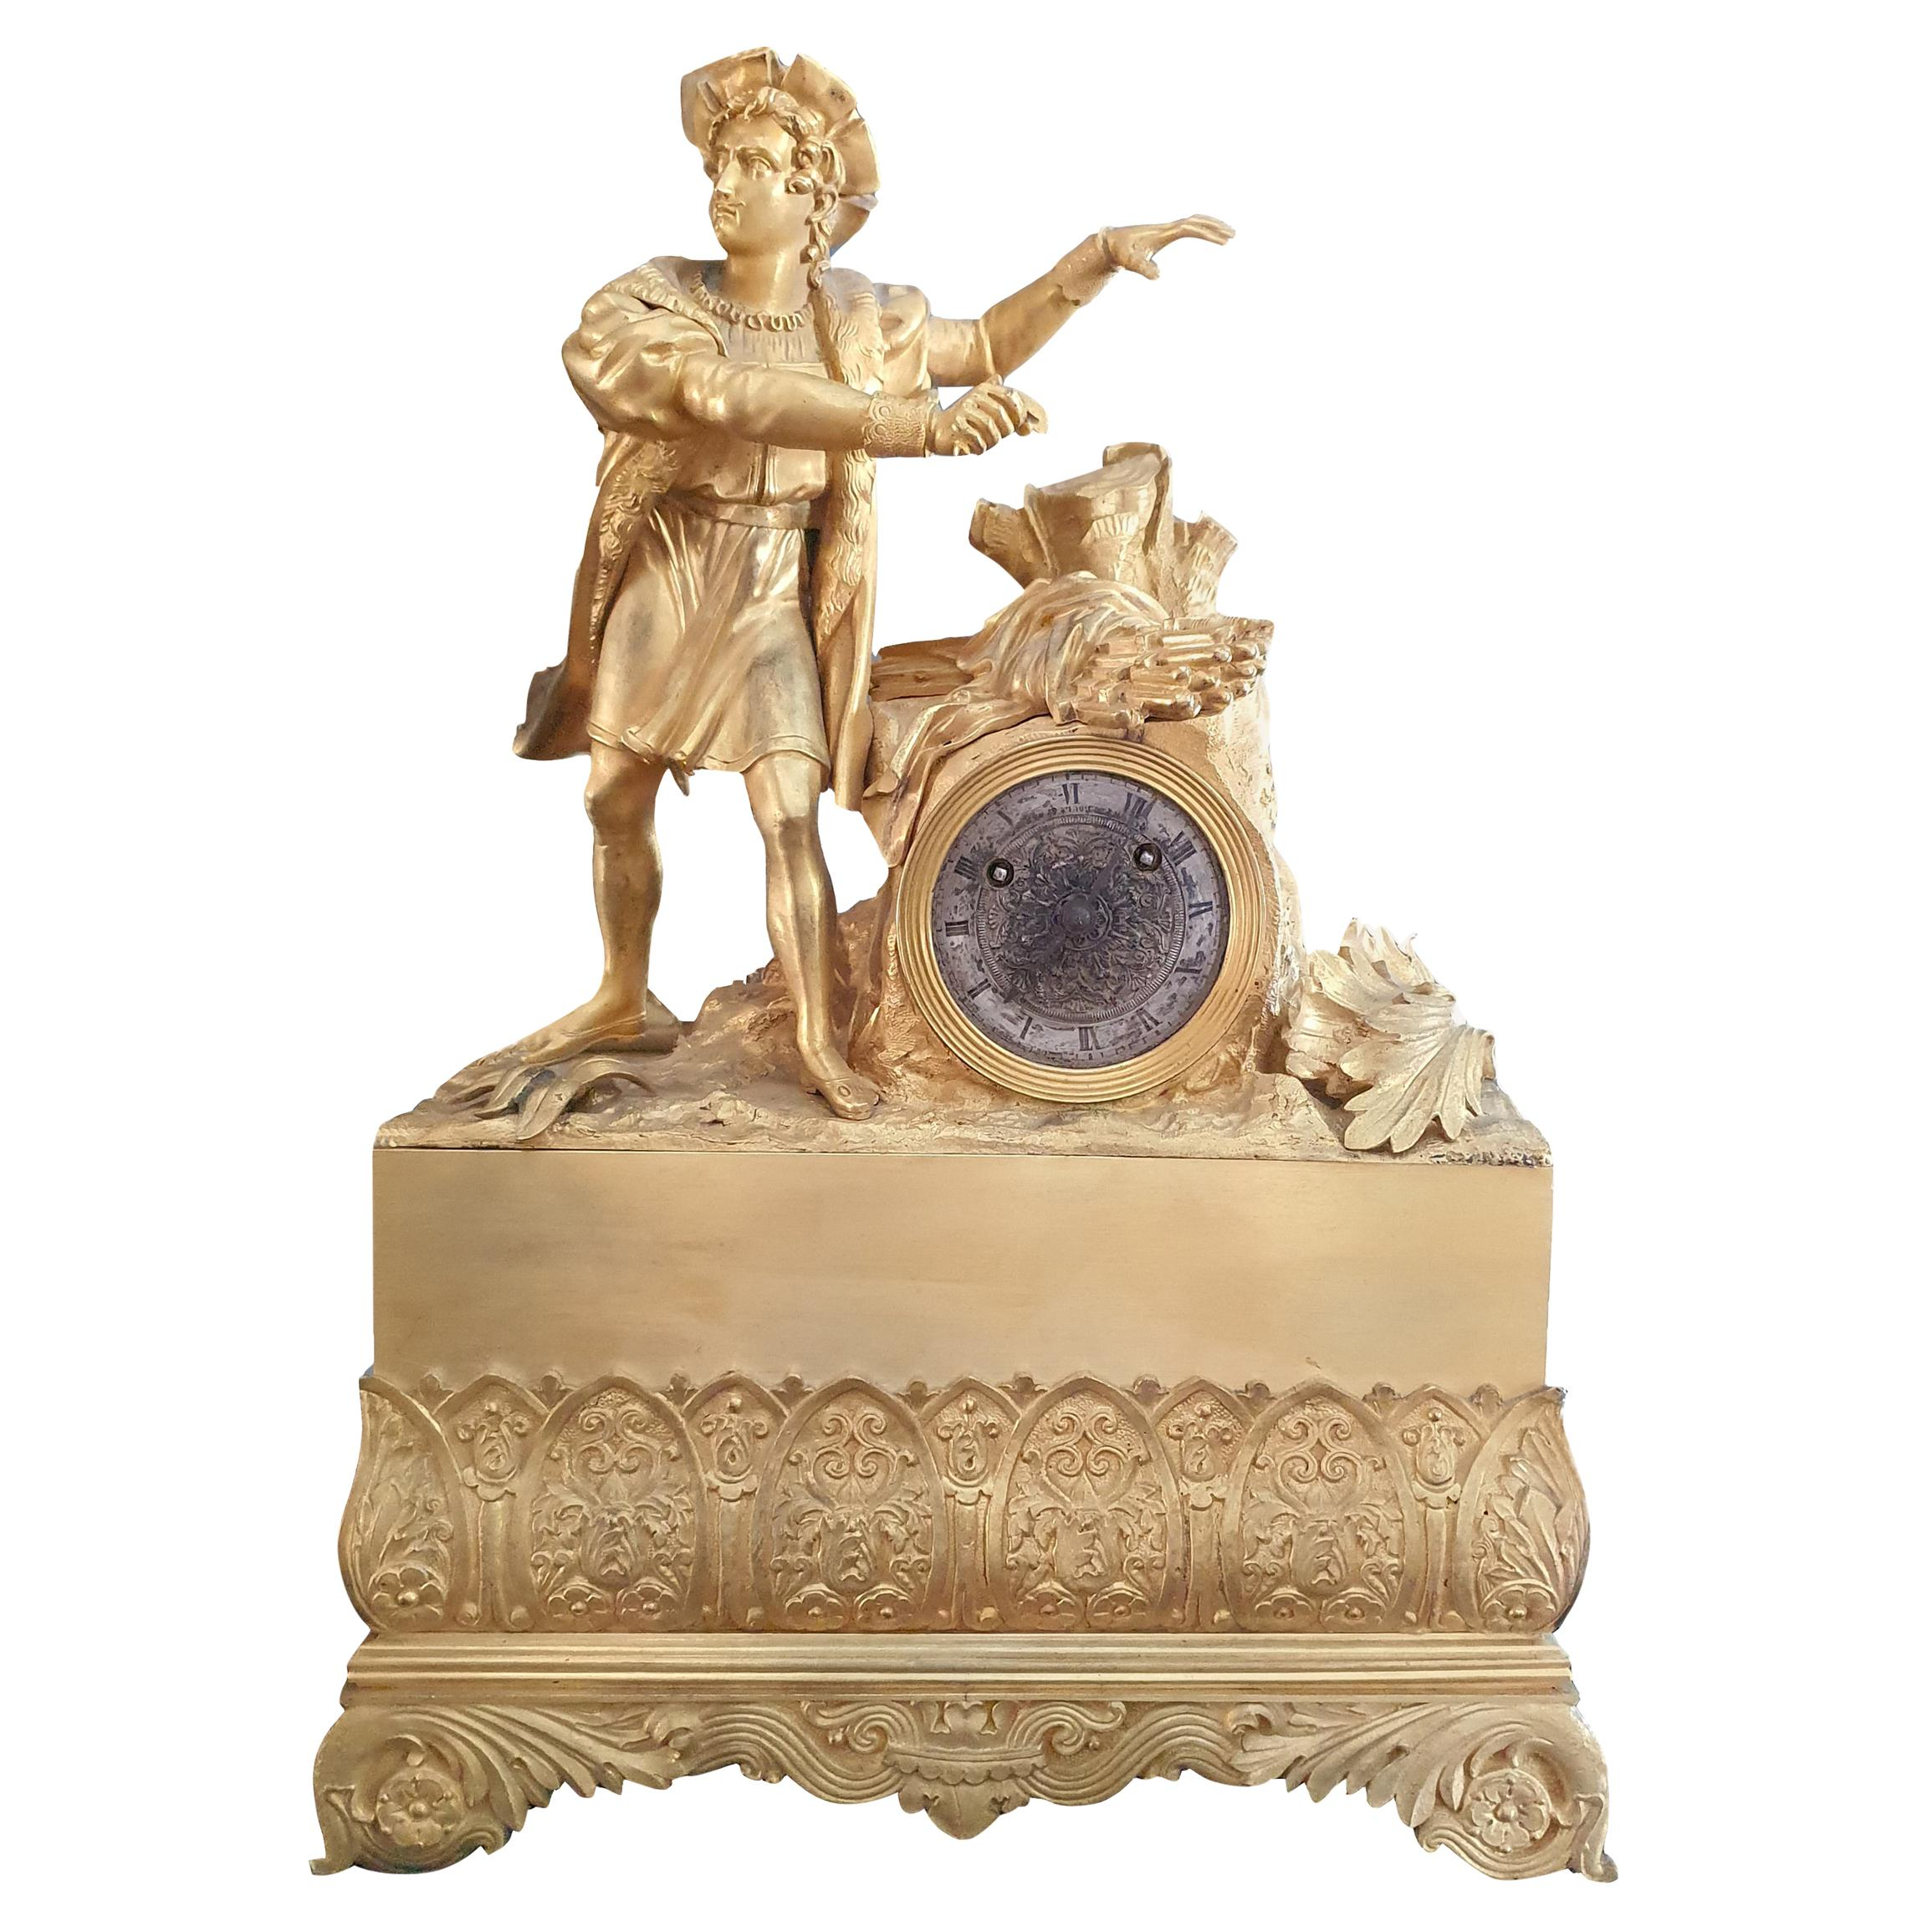 19th Century Table Clock in Finely Chiseled Gilt Bronze